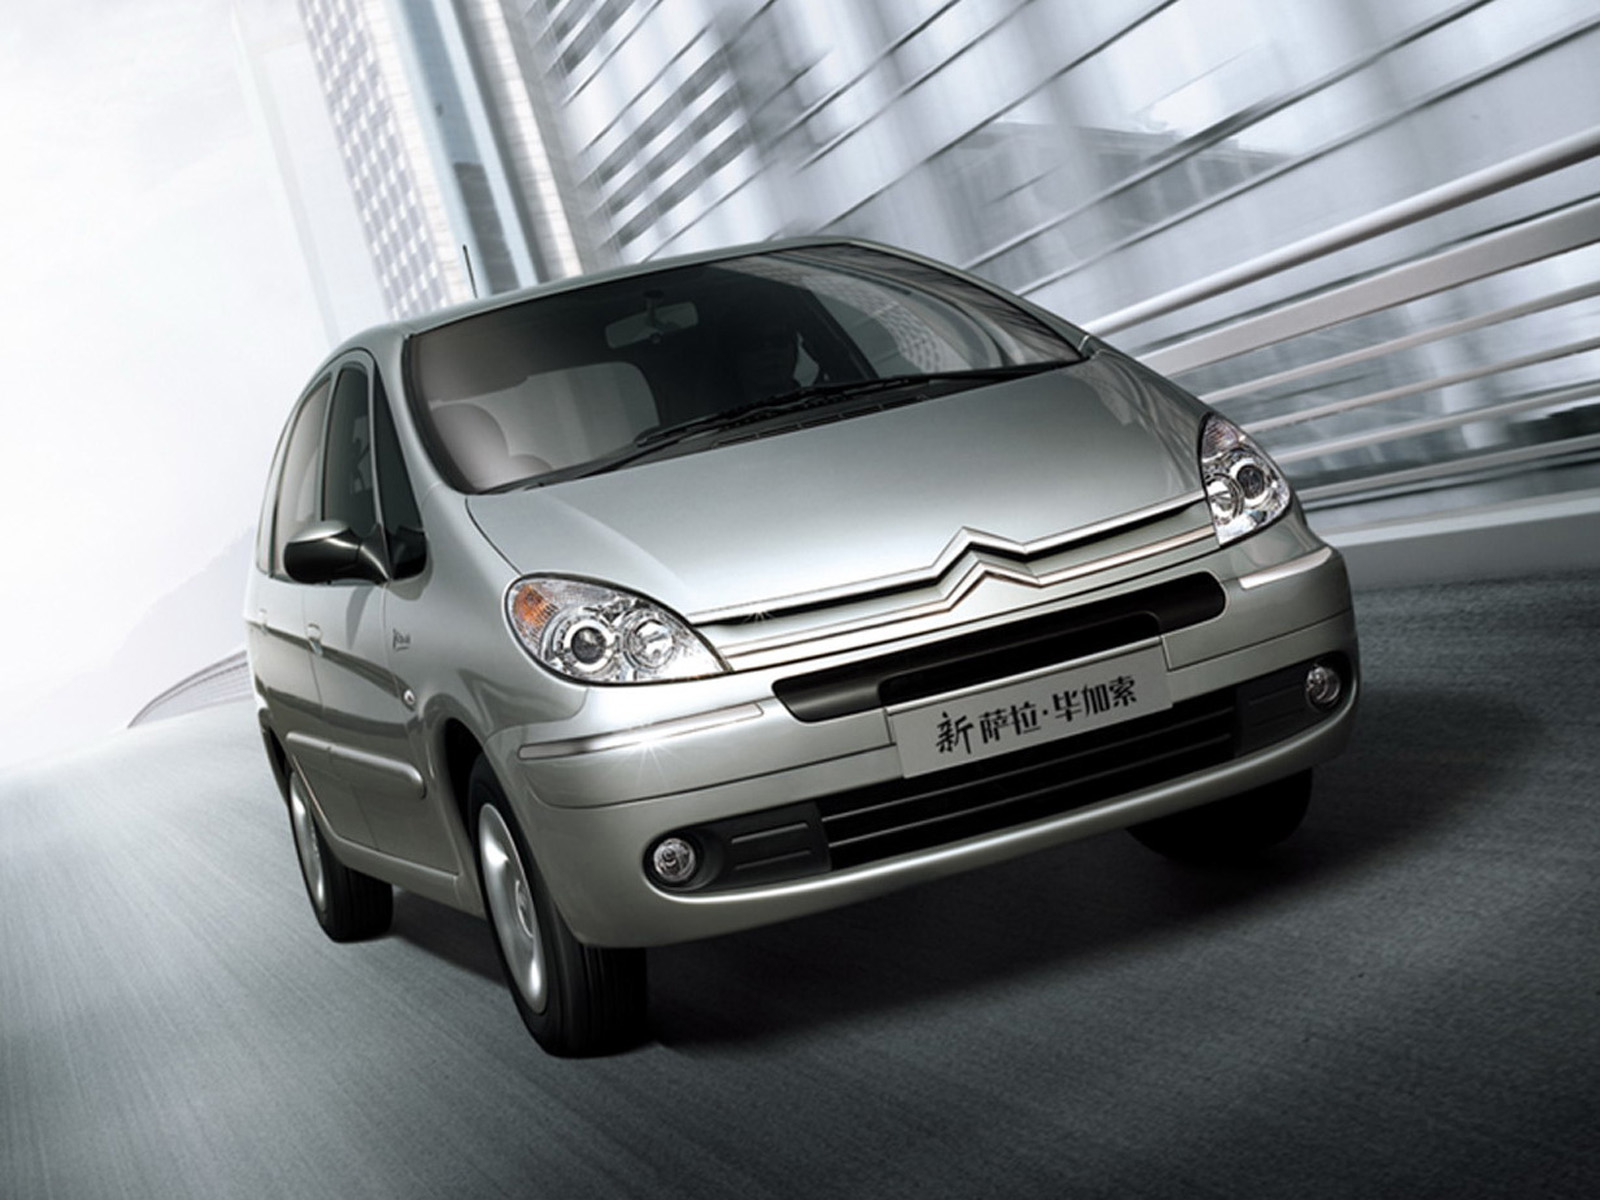 citroen xsara picasso photos photogallery with 5 pics. Black Bedroom Furniture Sets. Home Design Ideas